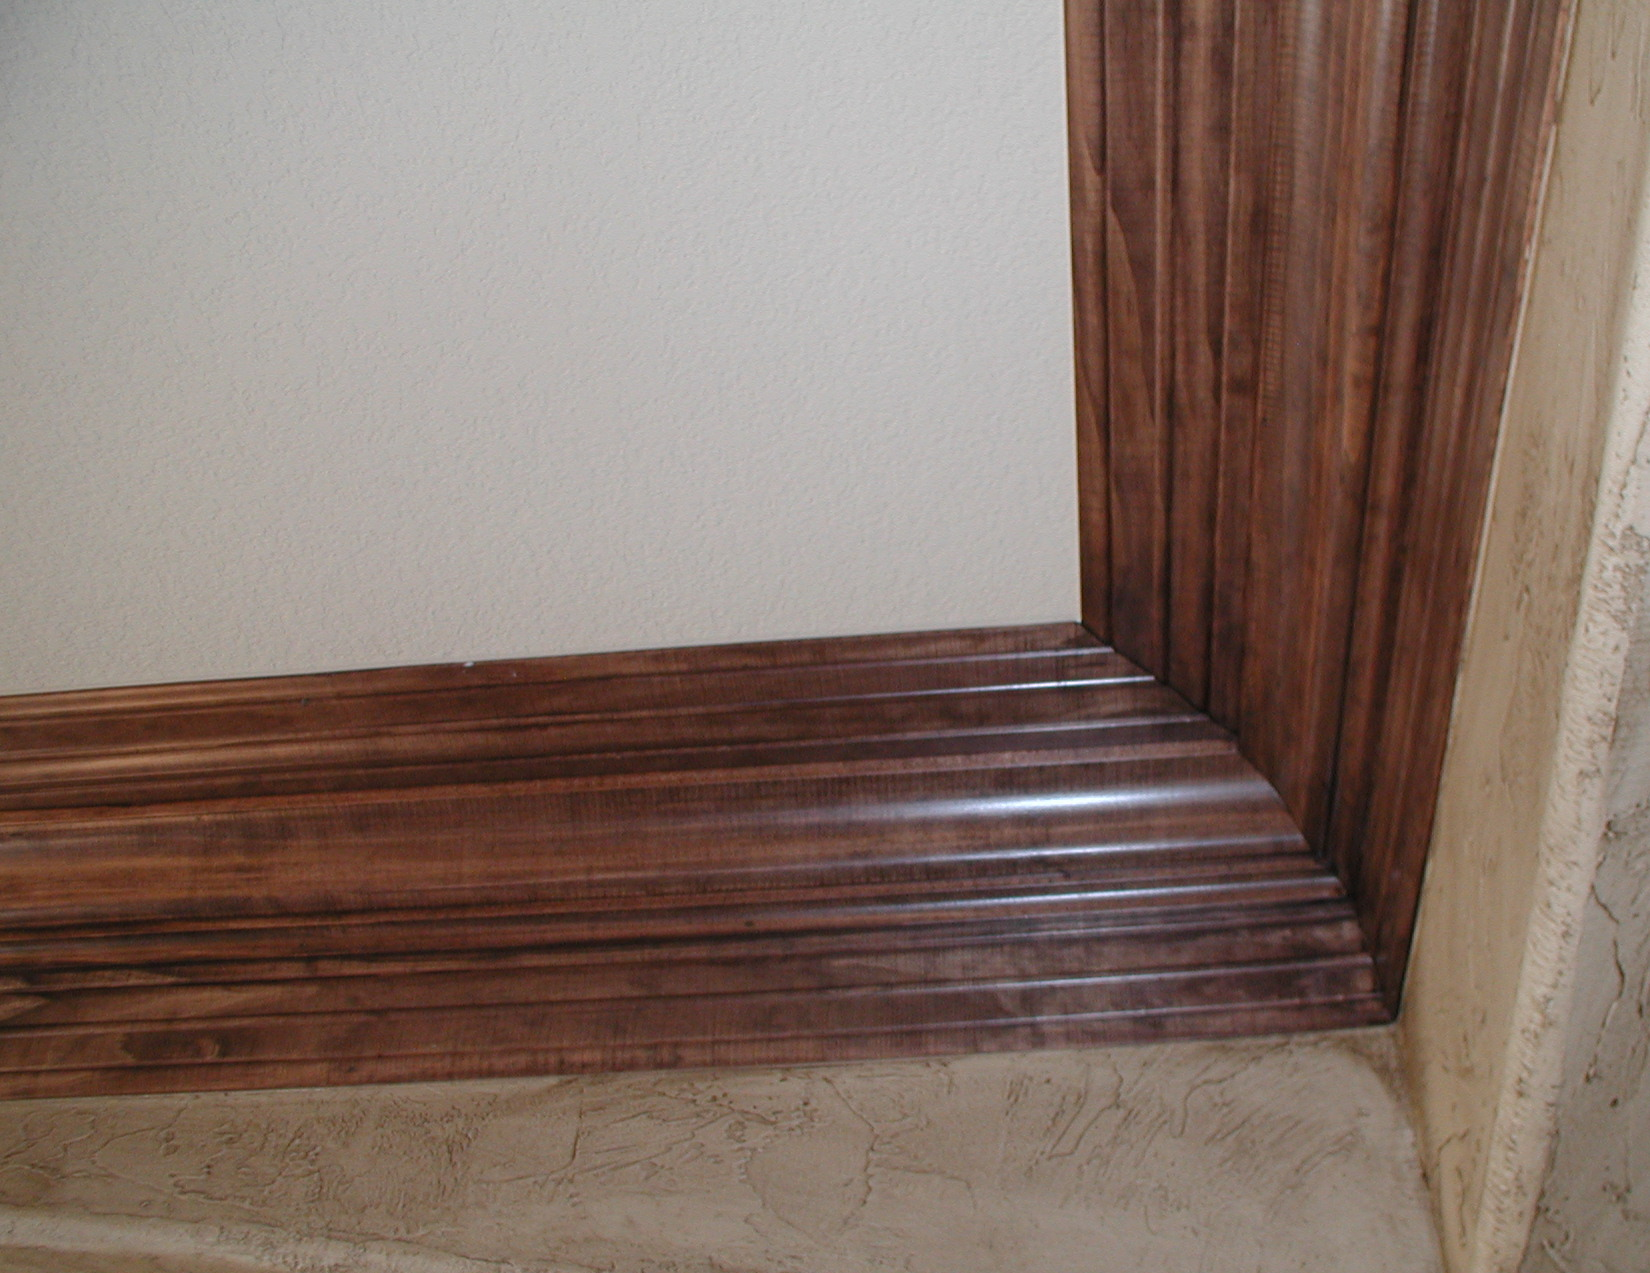 crown baseboard molding matched perfectly with white wall and cream ceramic floor